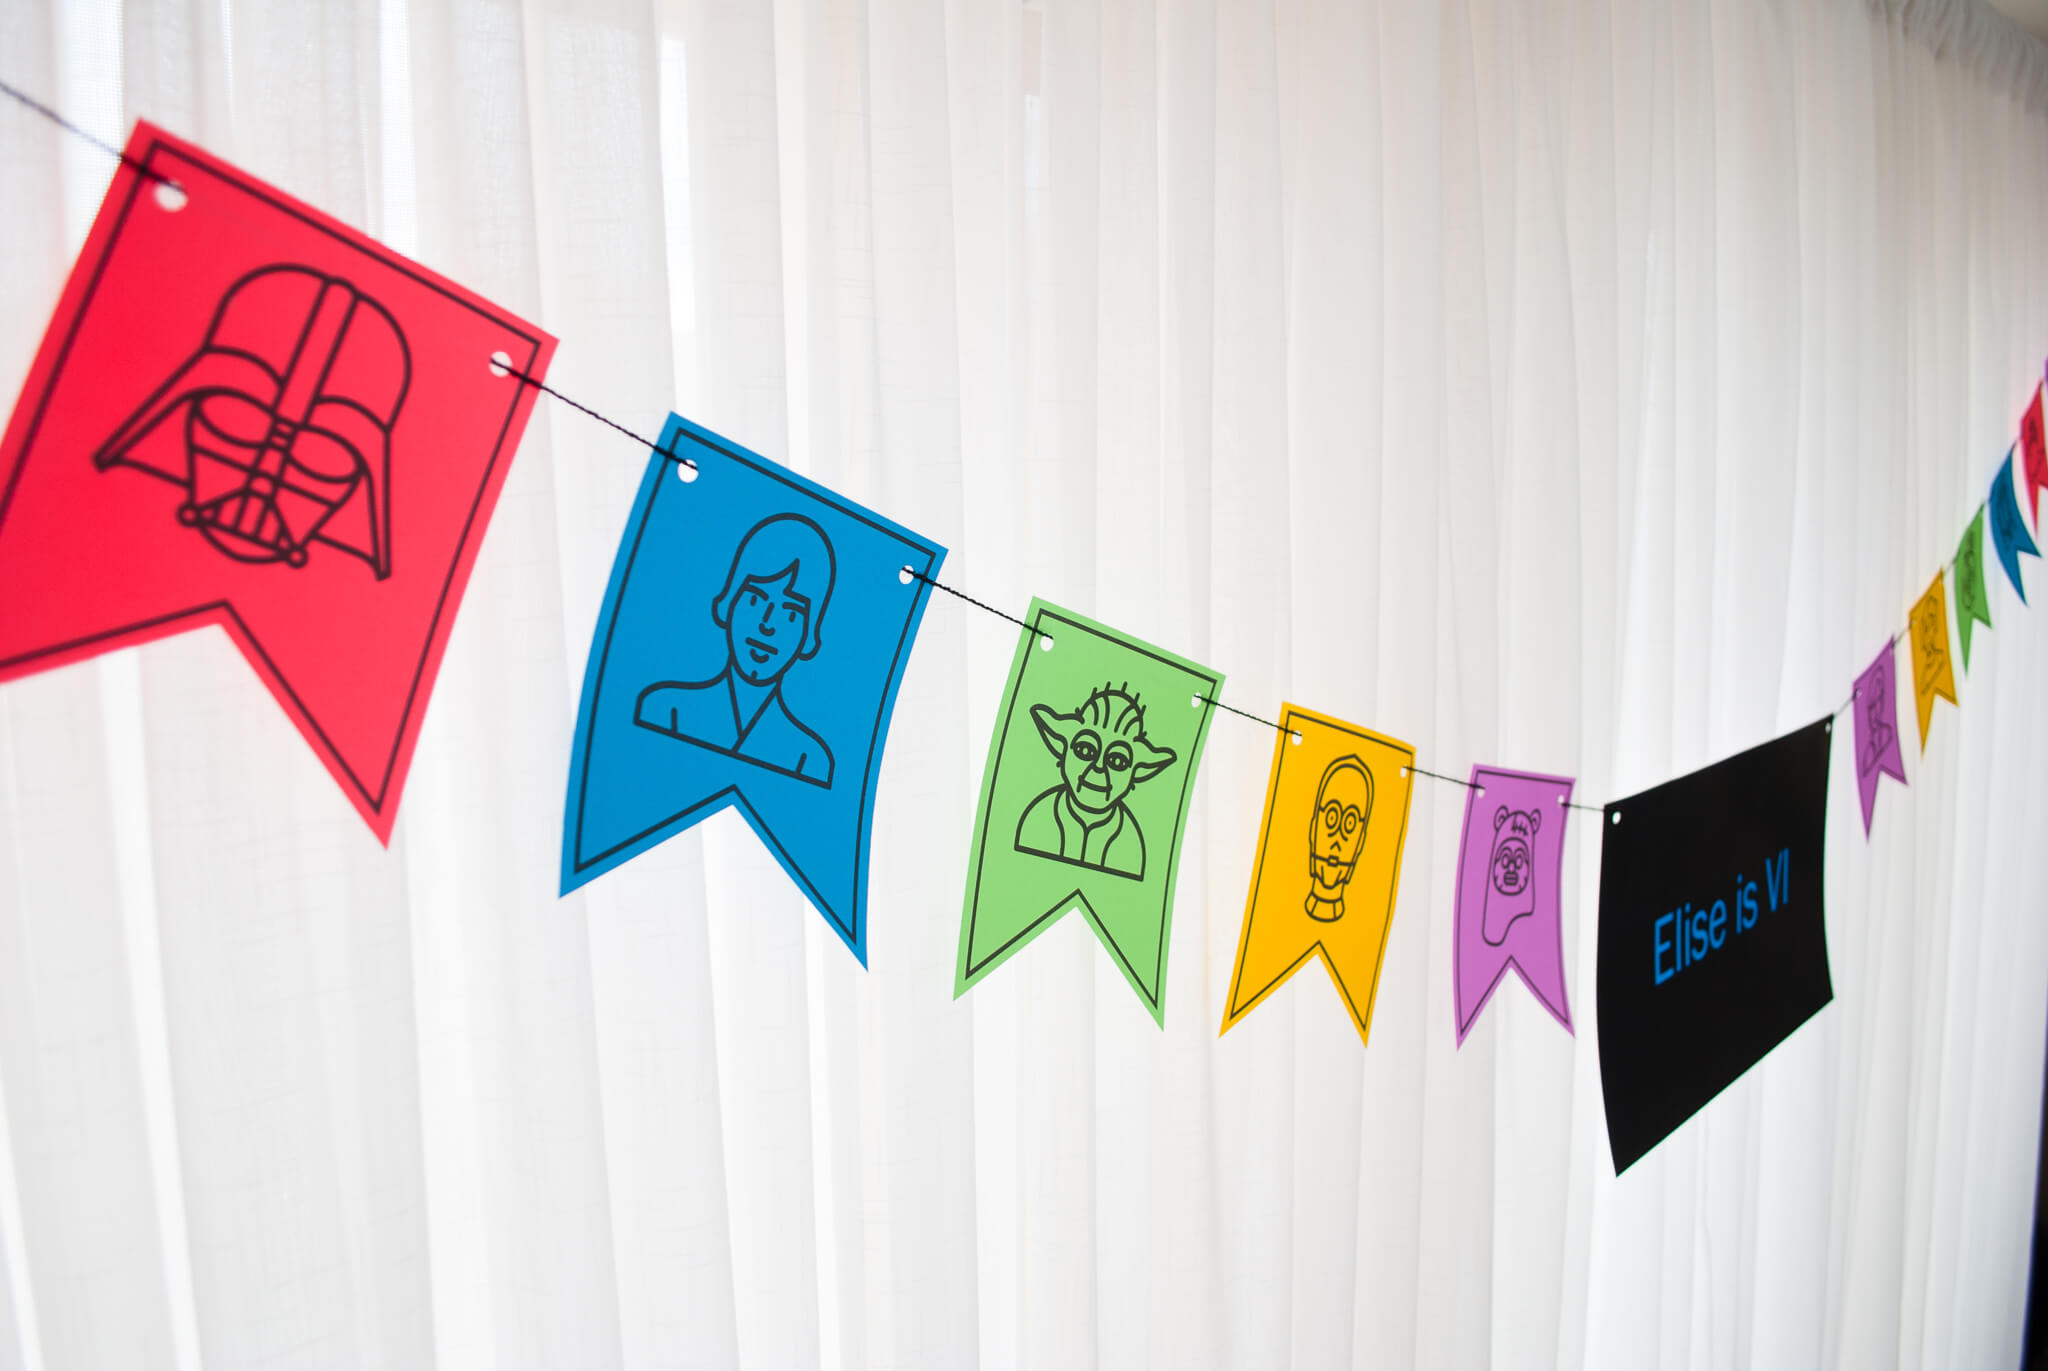 Star Wars Party Decorations Printable Birthday Banner In